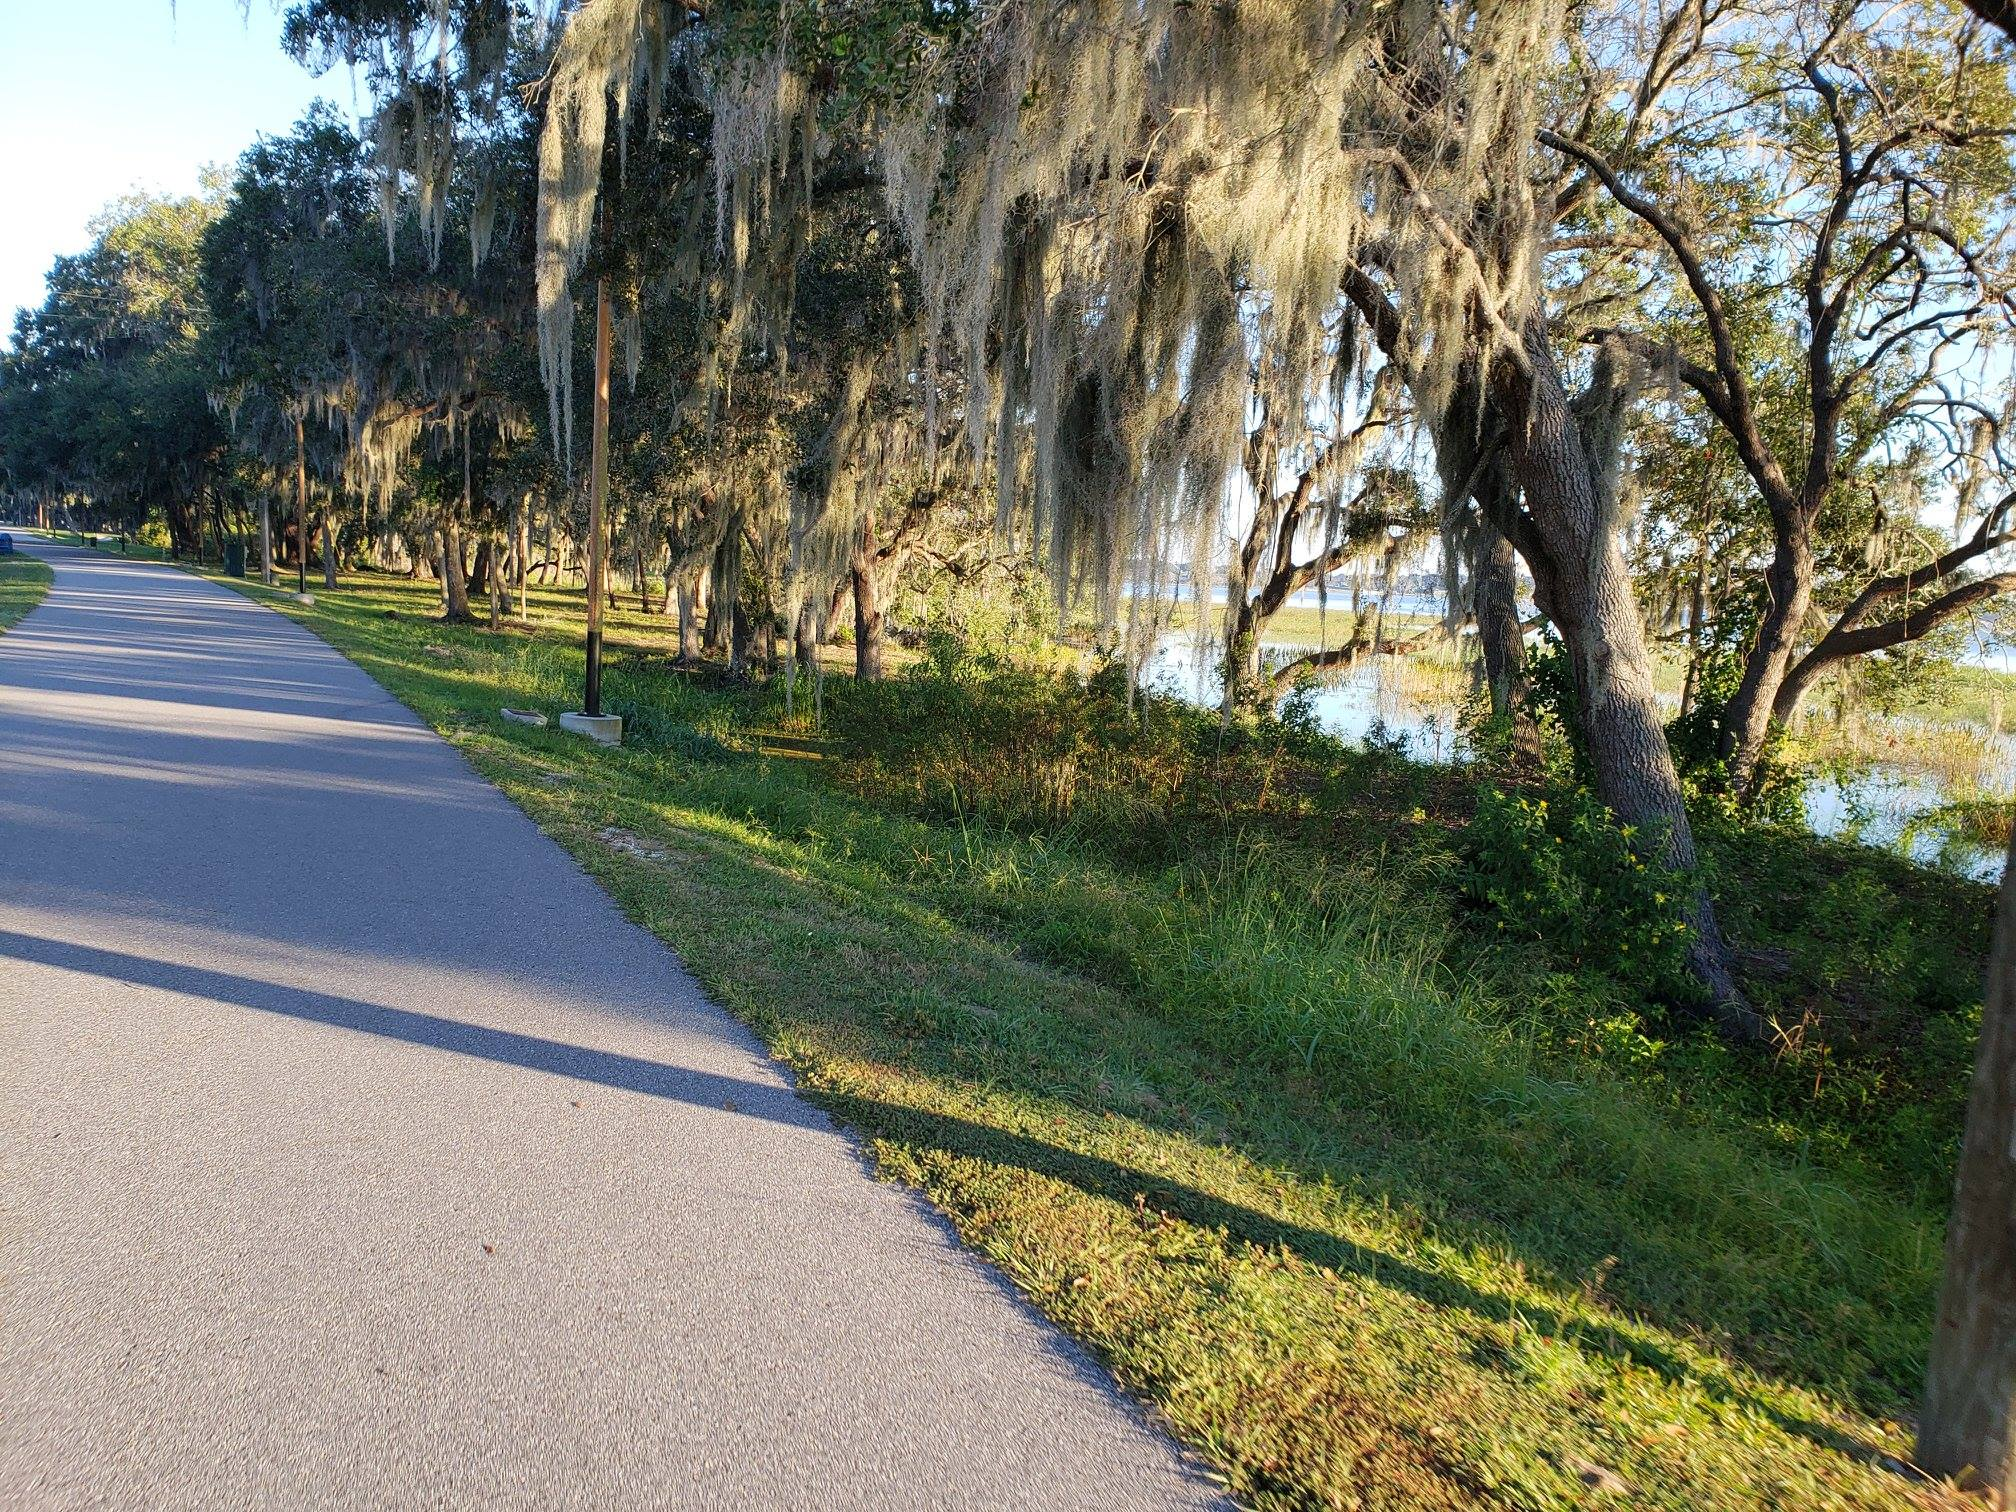 Looking down a paved trail with willow trees and water to the right